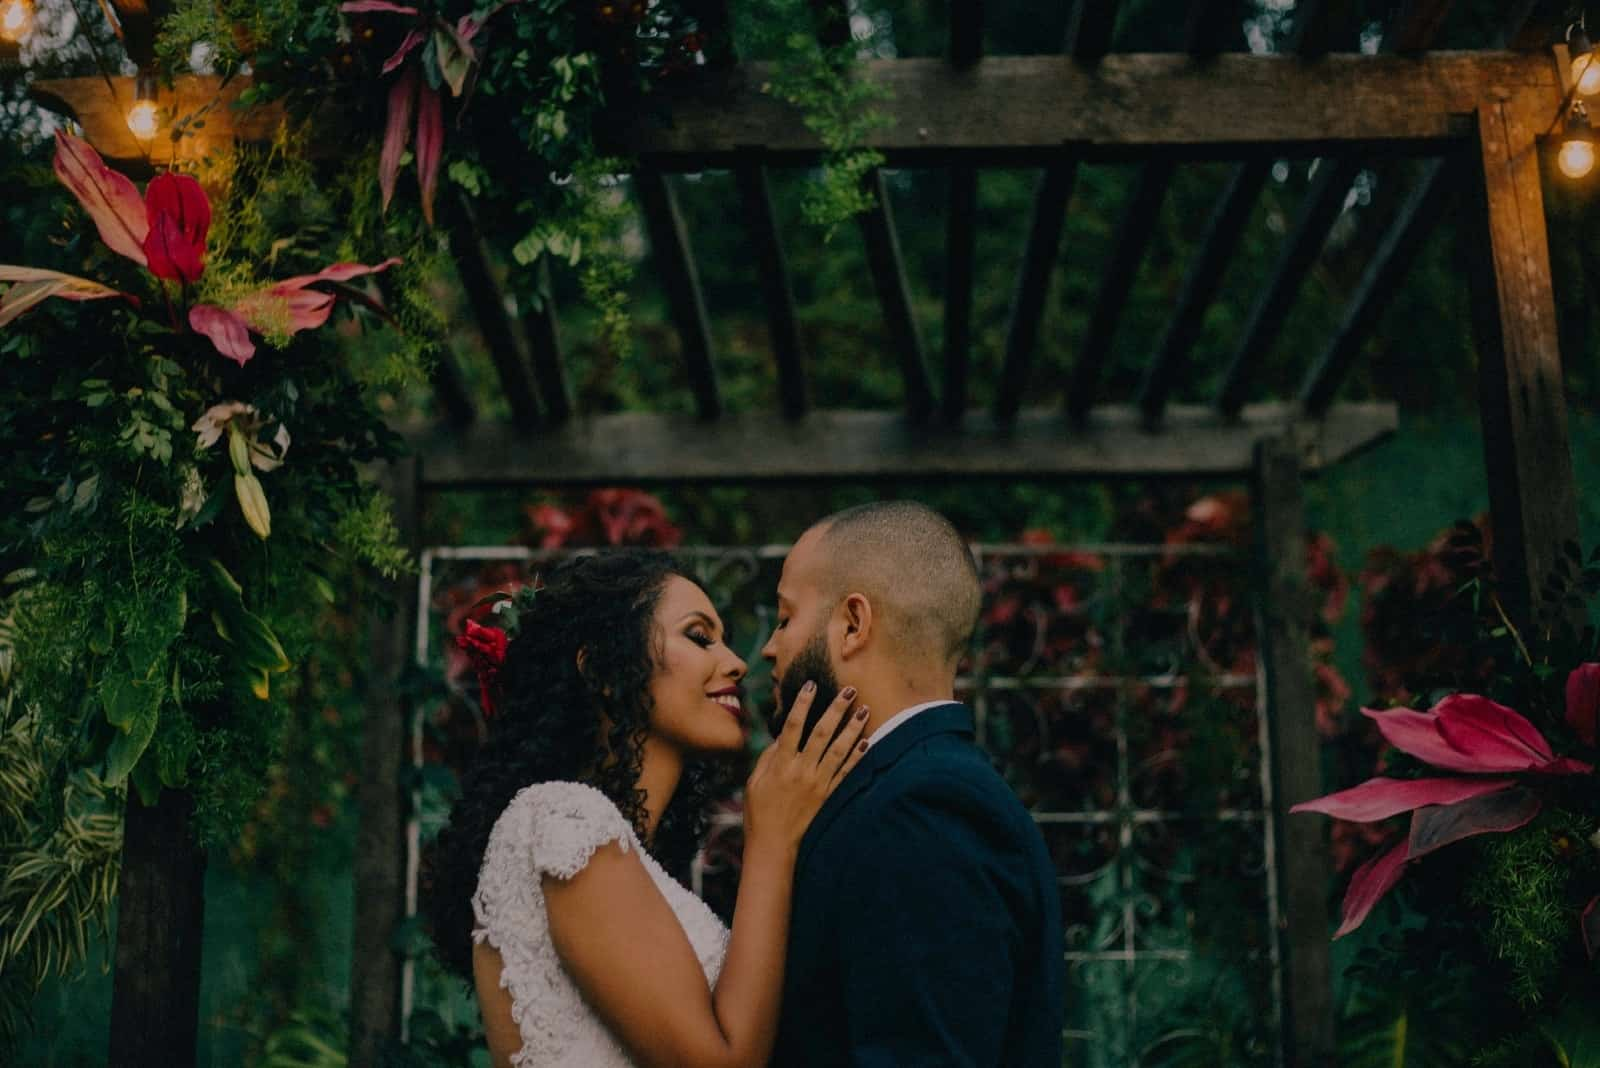 bride touching groom's face while standing near plants